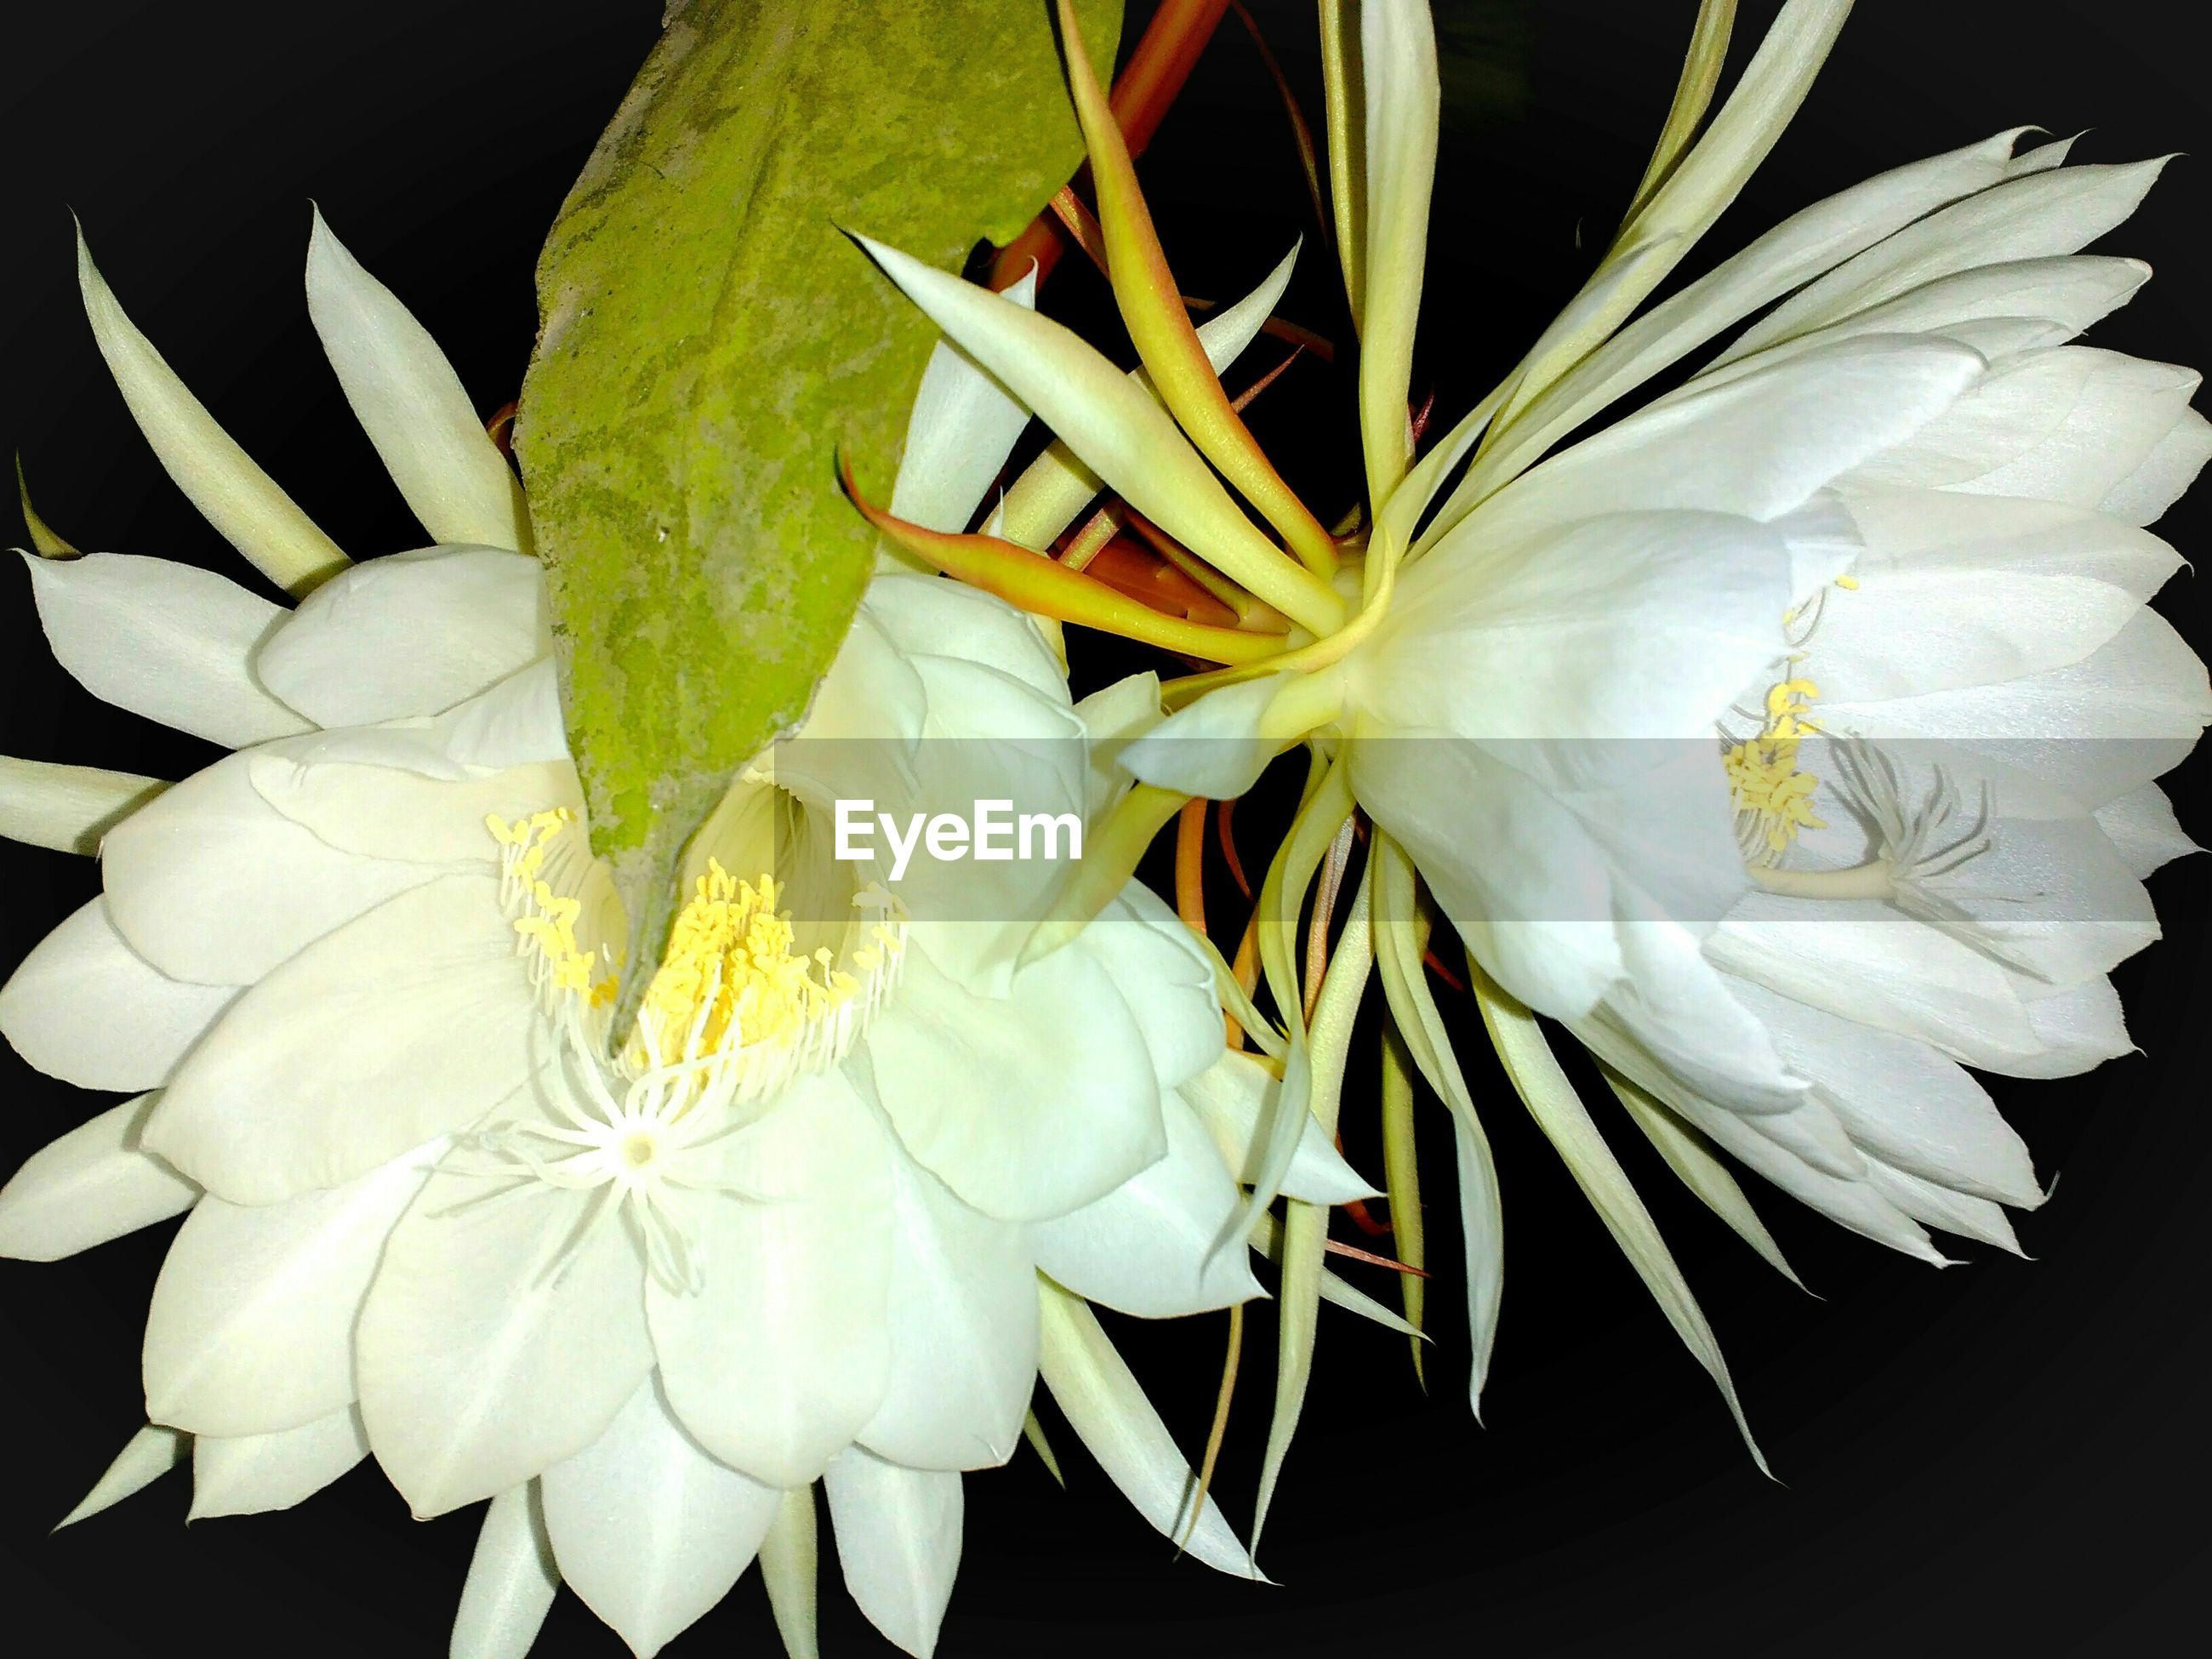 flower, petal, flower head, freshness, fragility, white color, close-up, beauty in nature, growth, plant, pollen, nature, blooming, white, stamen, indoors, single flower, studio shot, black background, in bloom